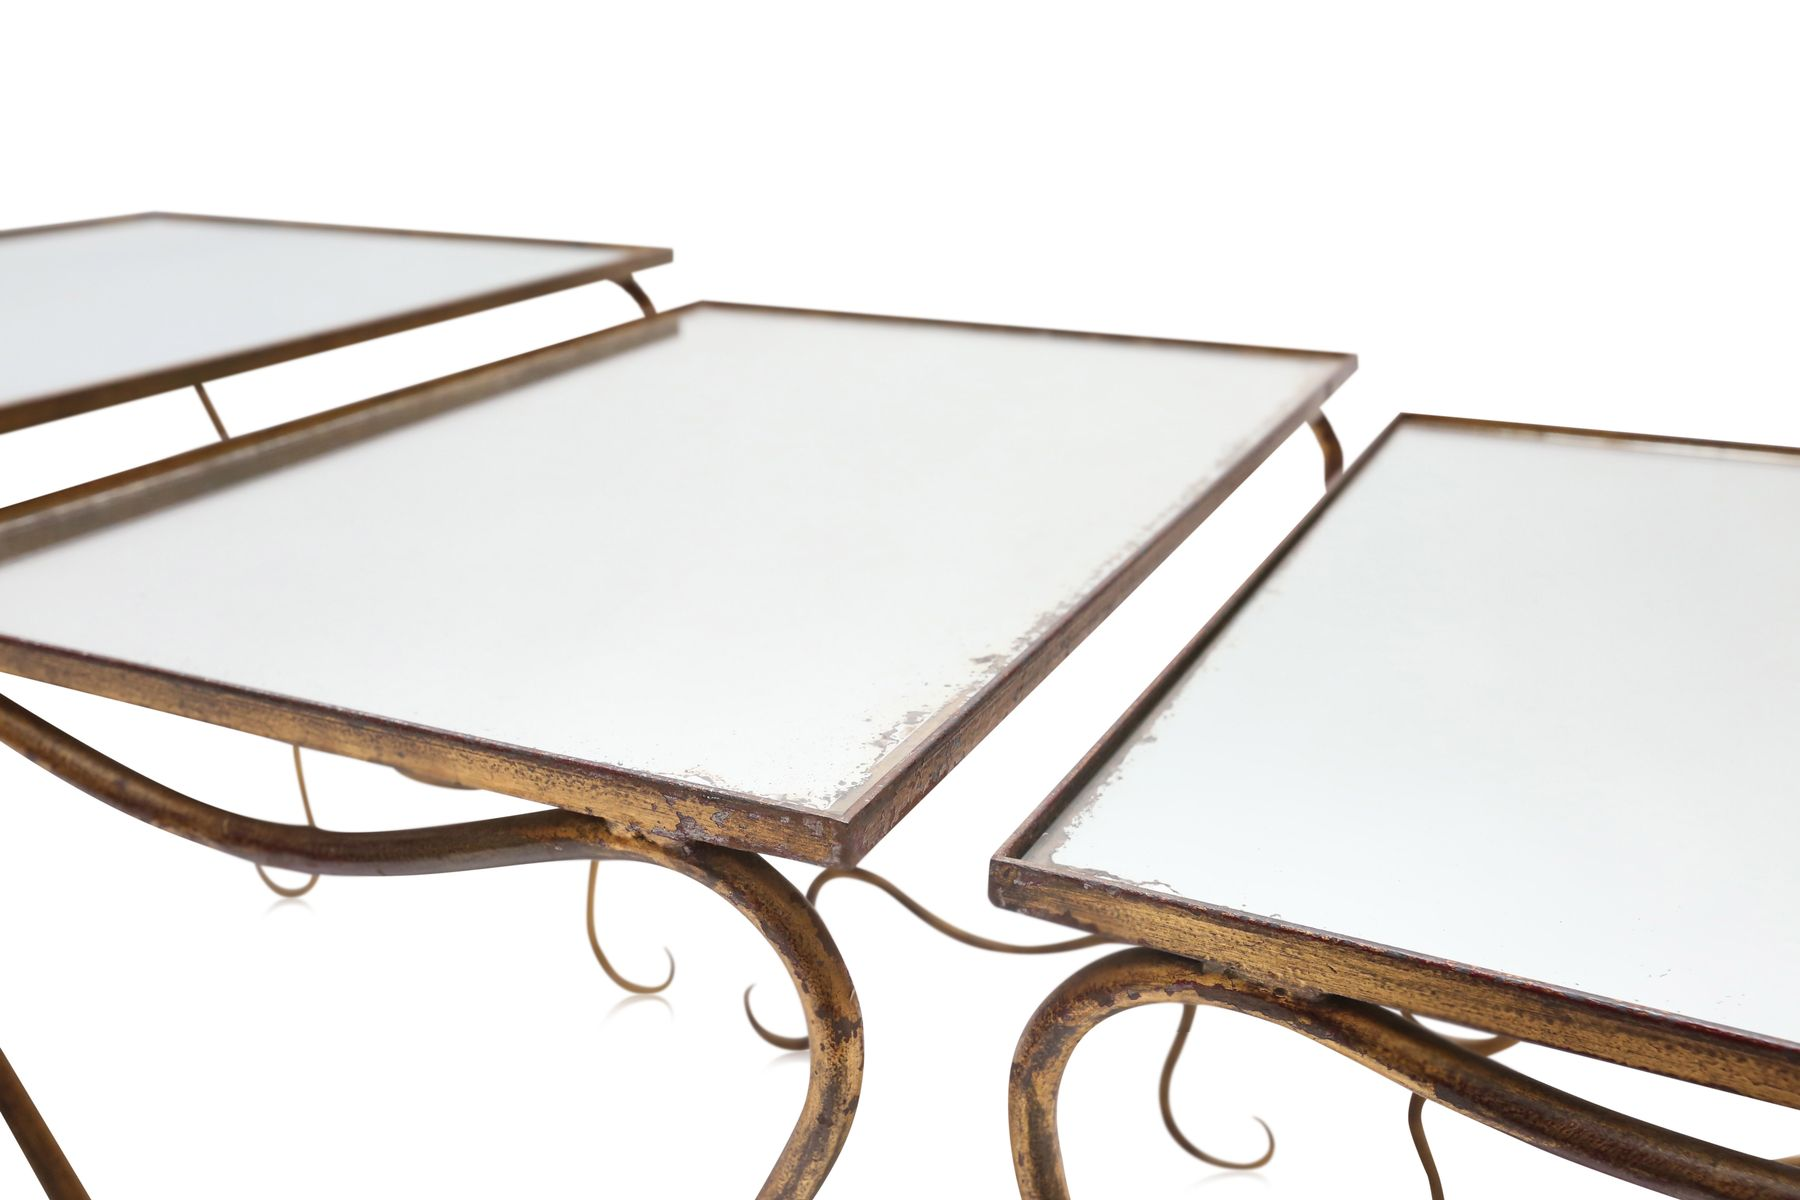 Gilded Wrought Iron Nesting Tables By René Drouet, 1940s 5. $3,078.00.  Price Per Set